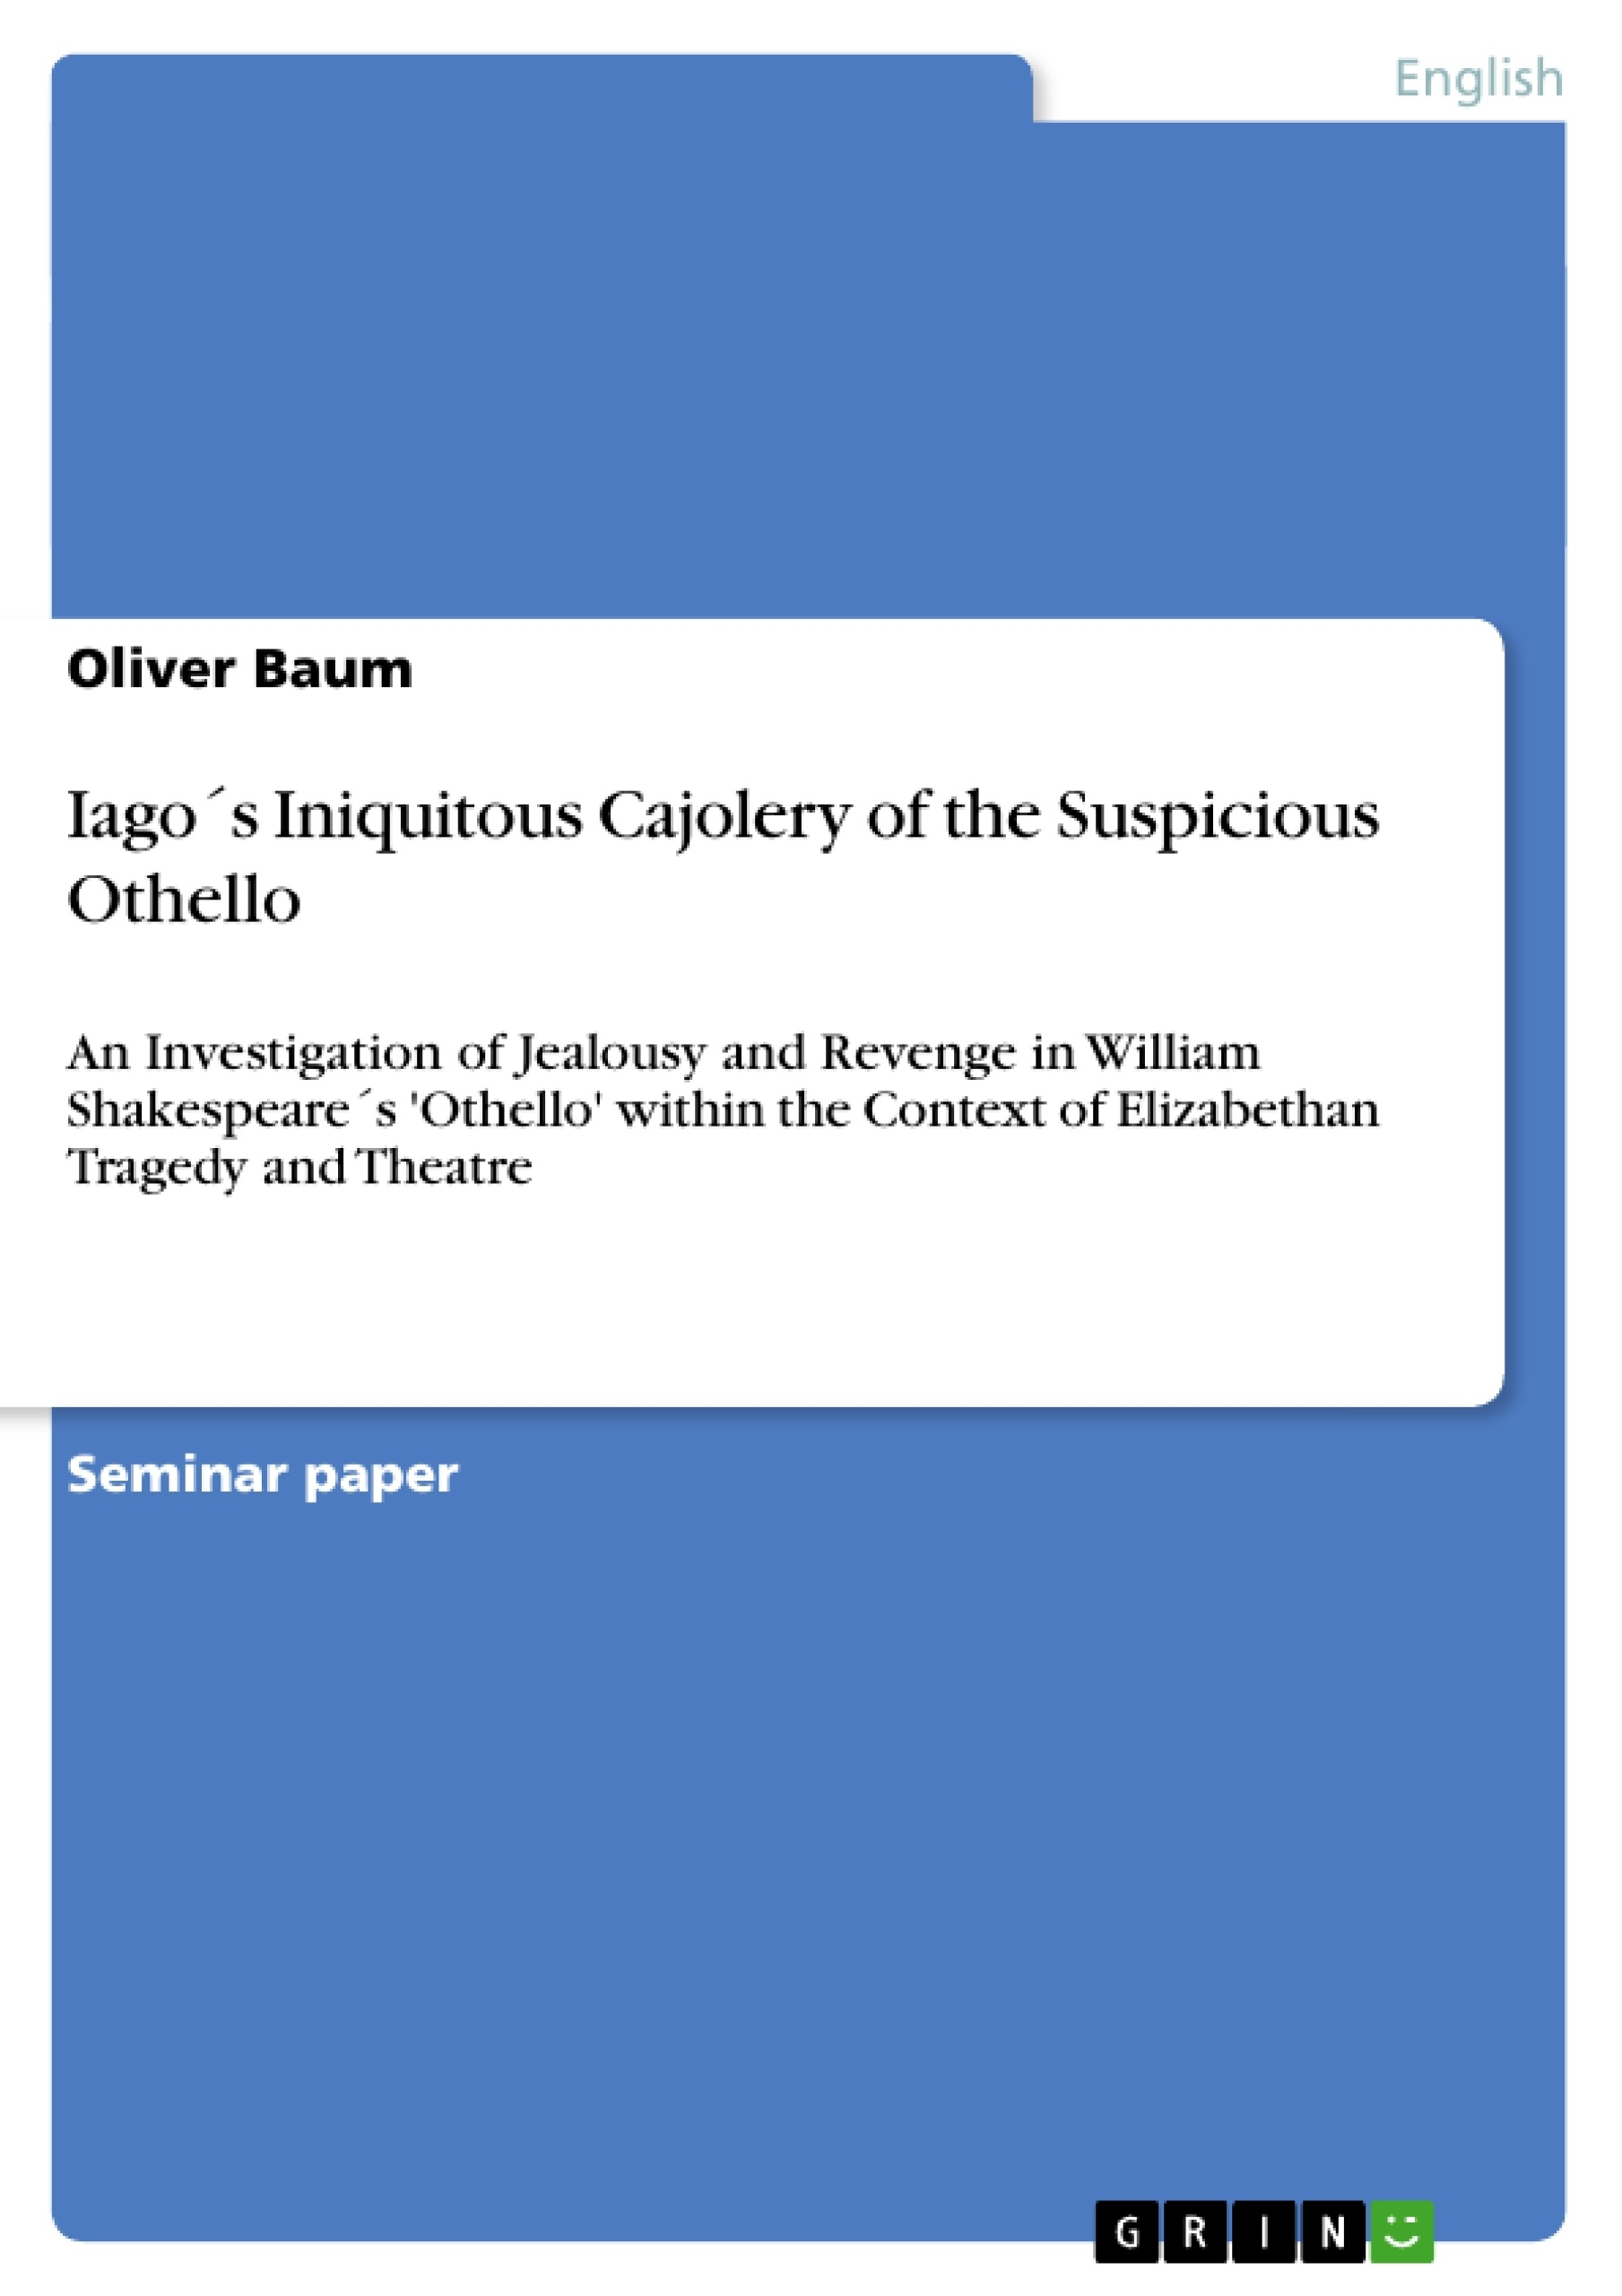 othello tragedy essay shakespeare s tragedy plays elements  iago acute s iniquitous cajolery of the suspicious othello publish iagoacutes iniquitous cajolery of the suspicious